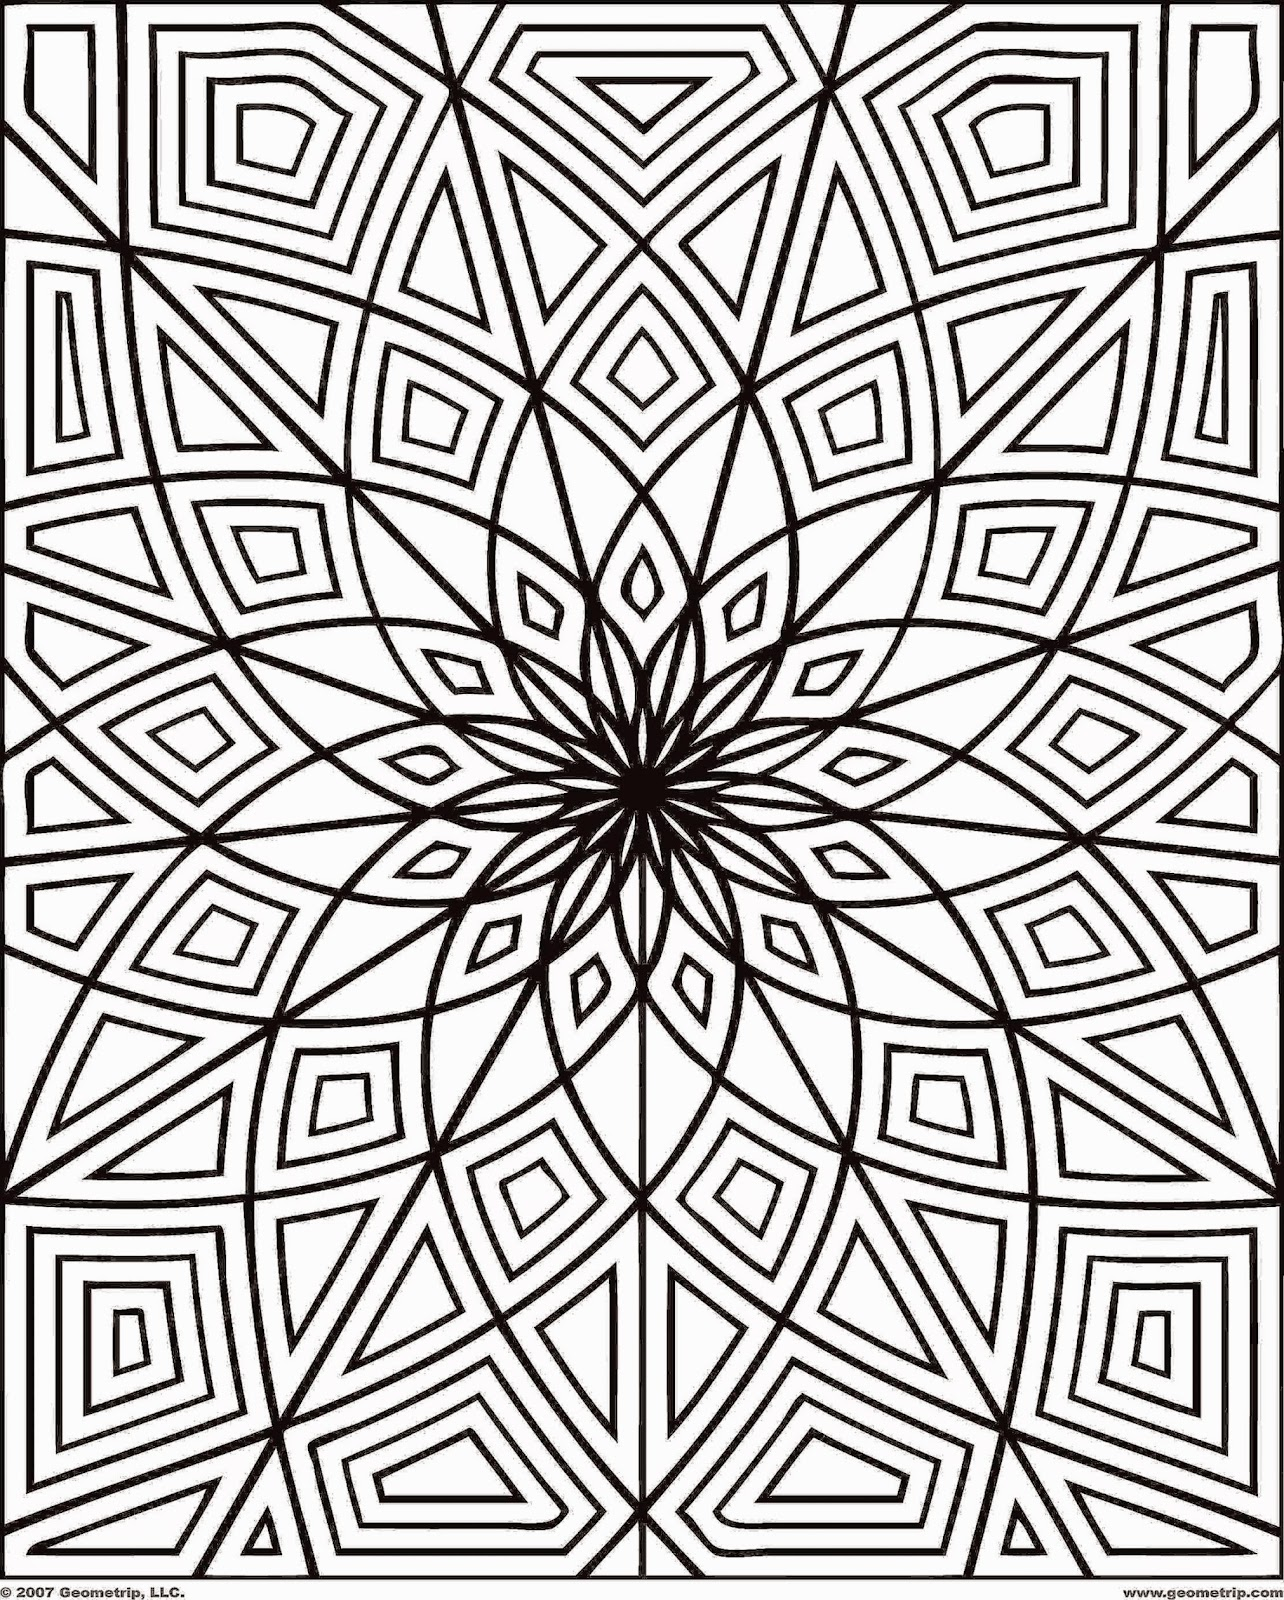 Printable coloring pages for adults free coloring sheet for Free printable coloring pages for adults and kids